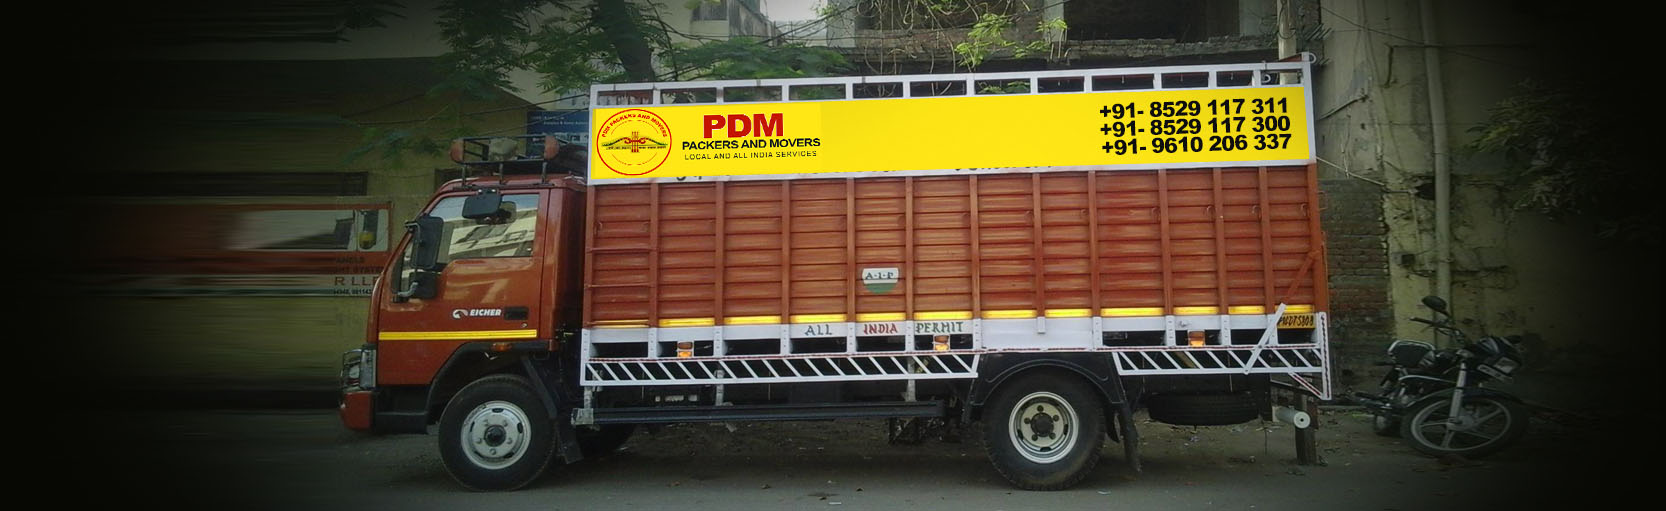 PDM packers and movers